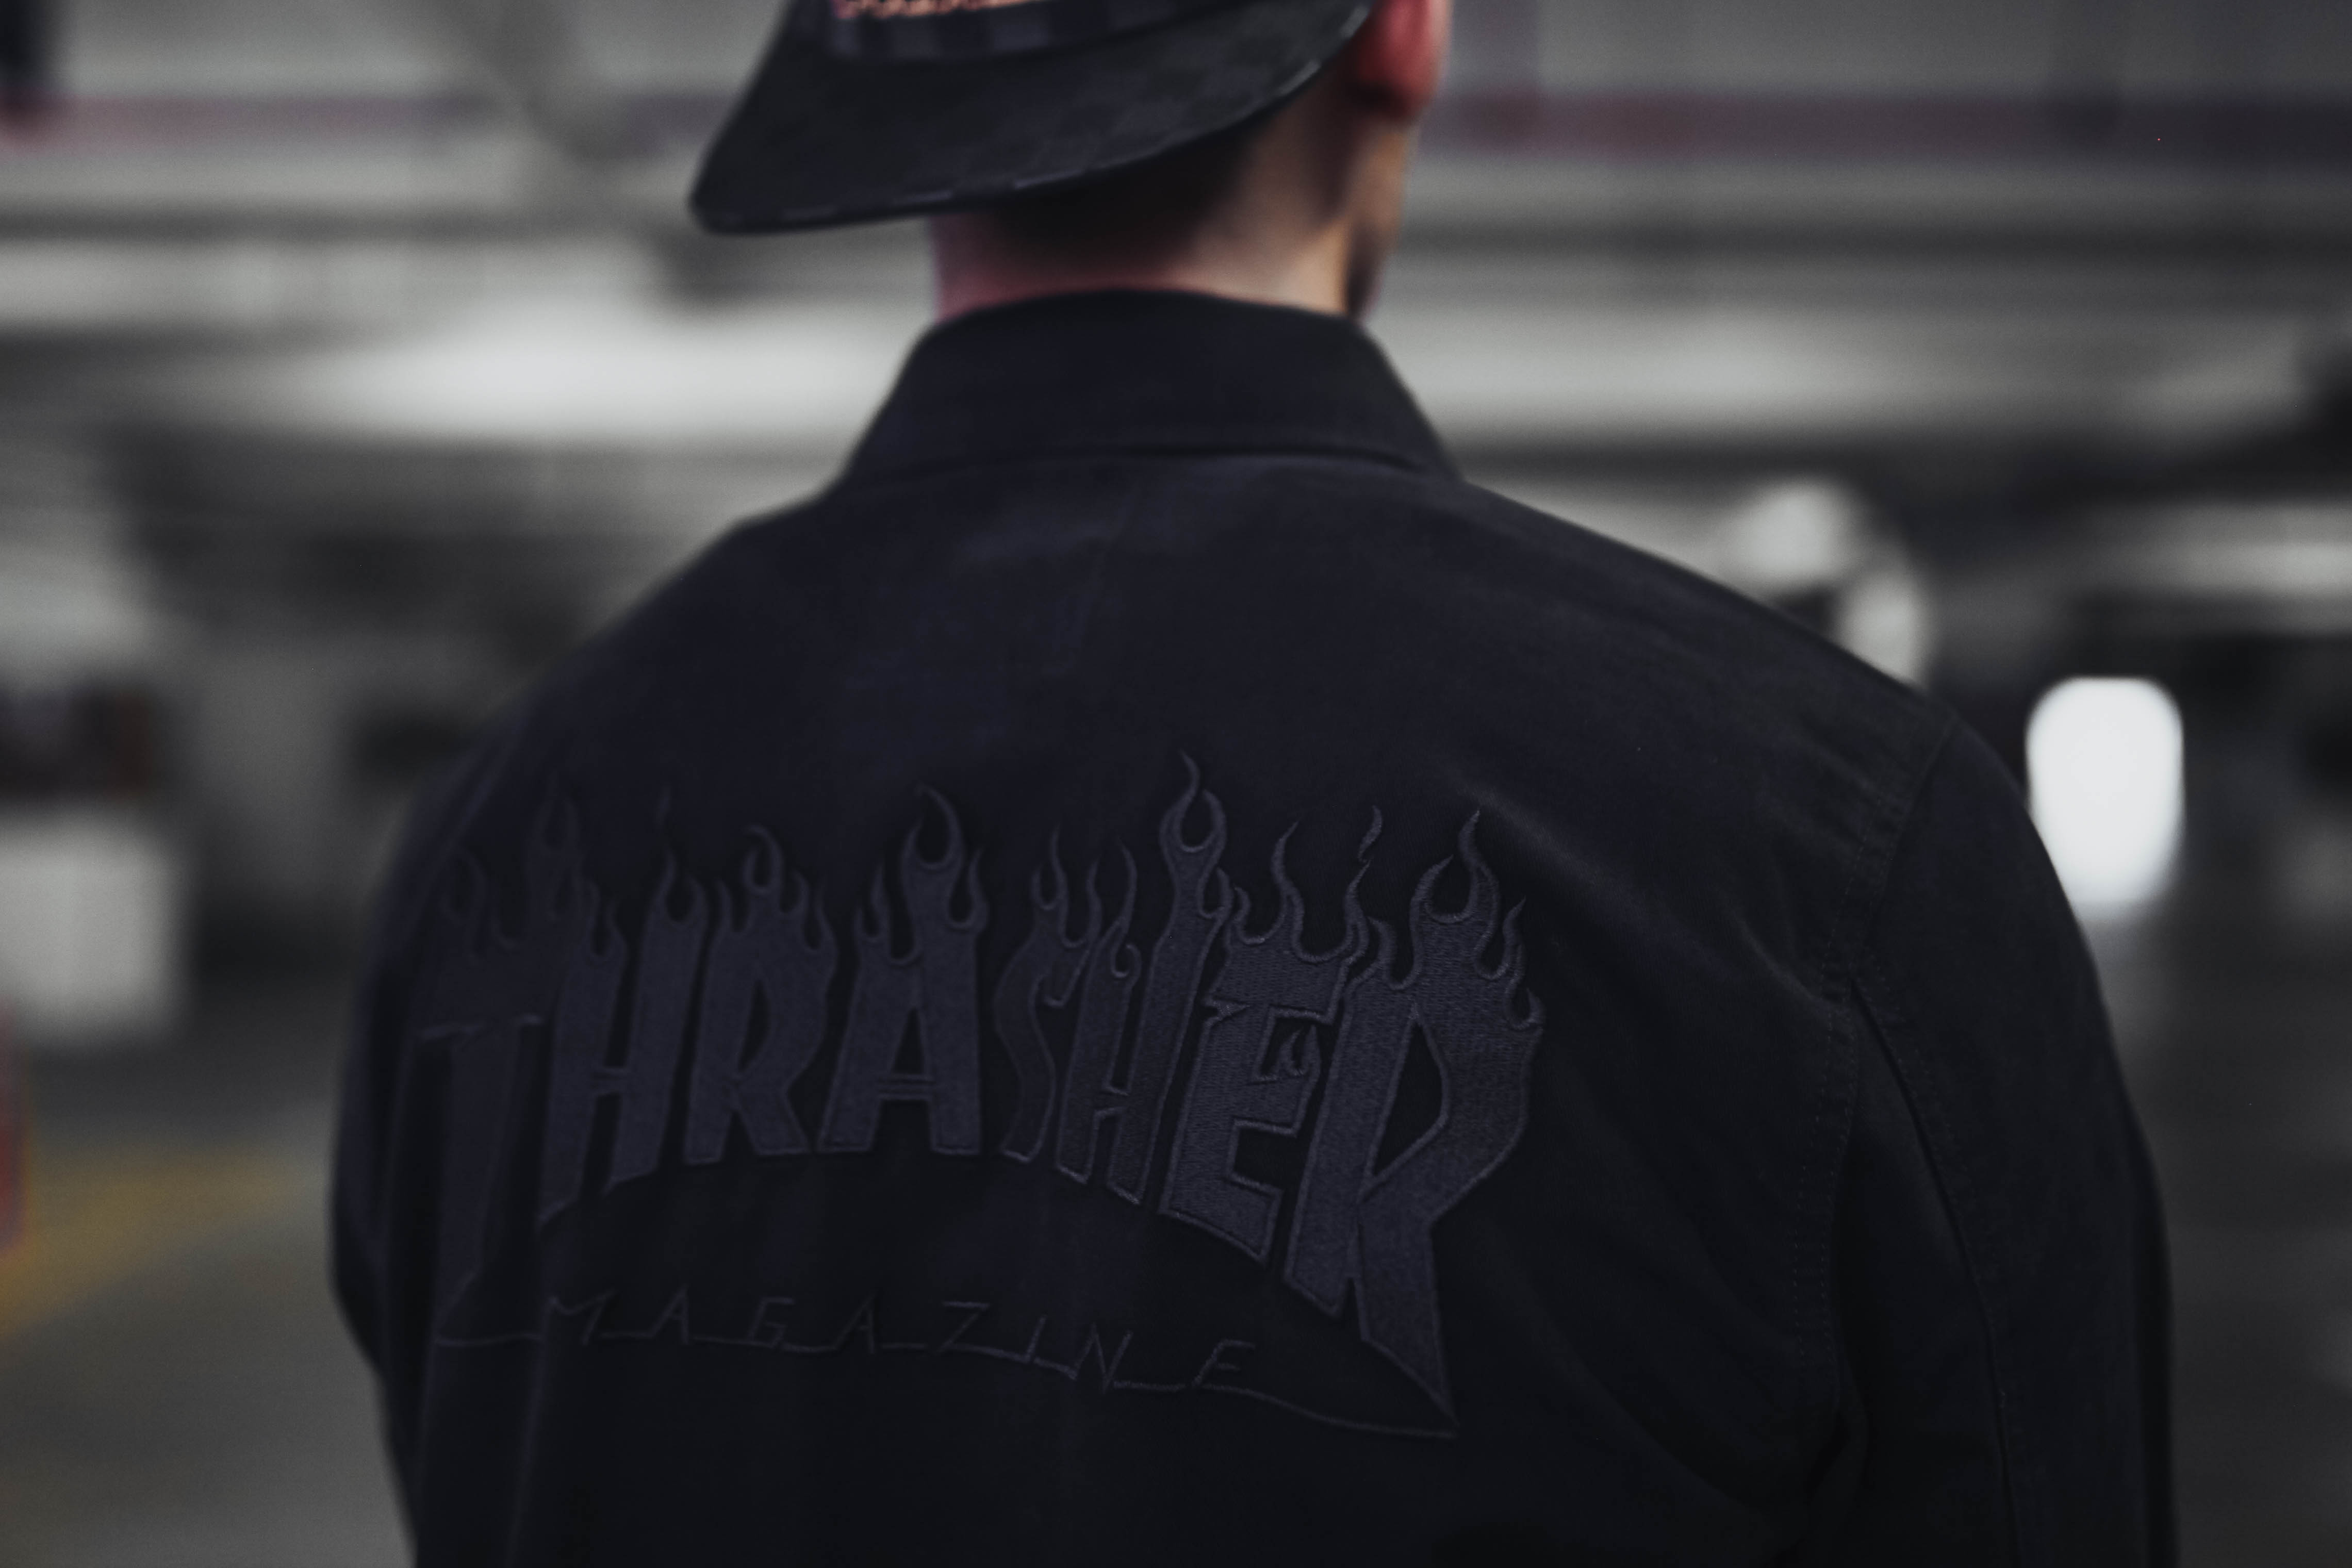 b55876a755 Our first look at Vans x Thrasher collection. - MASSES